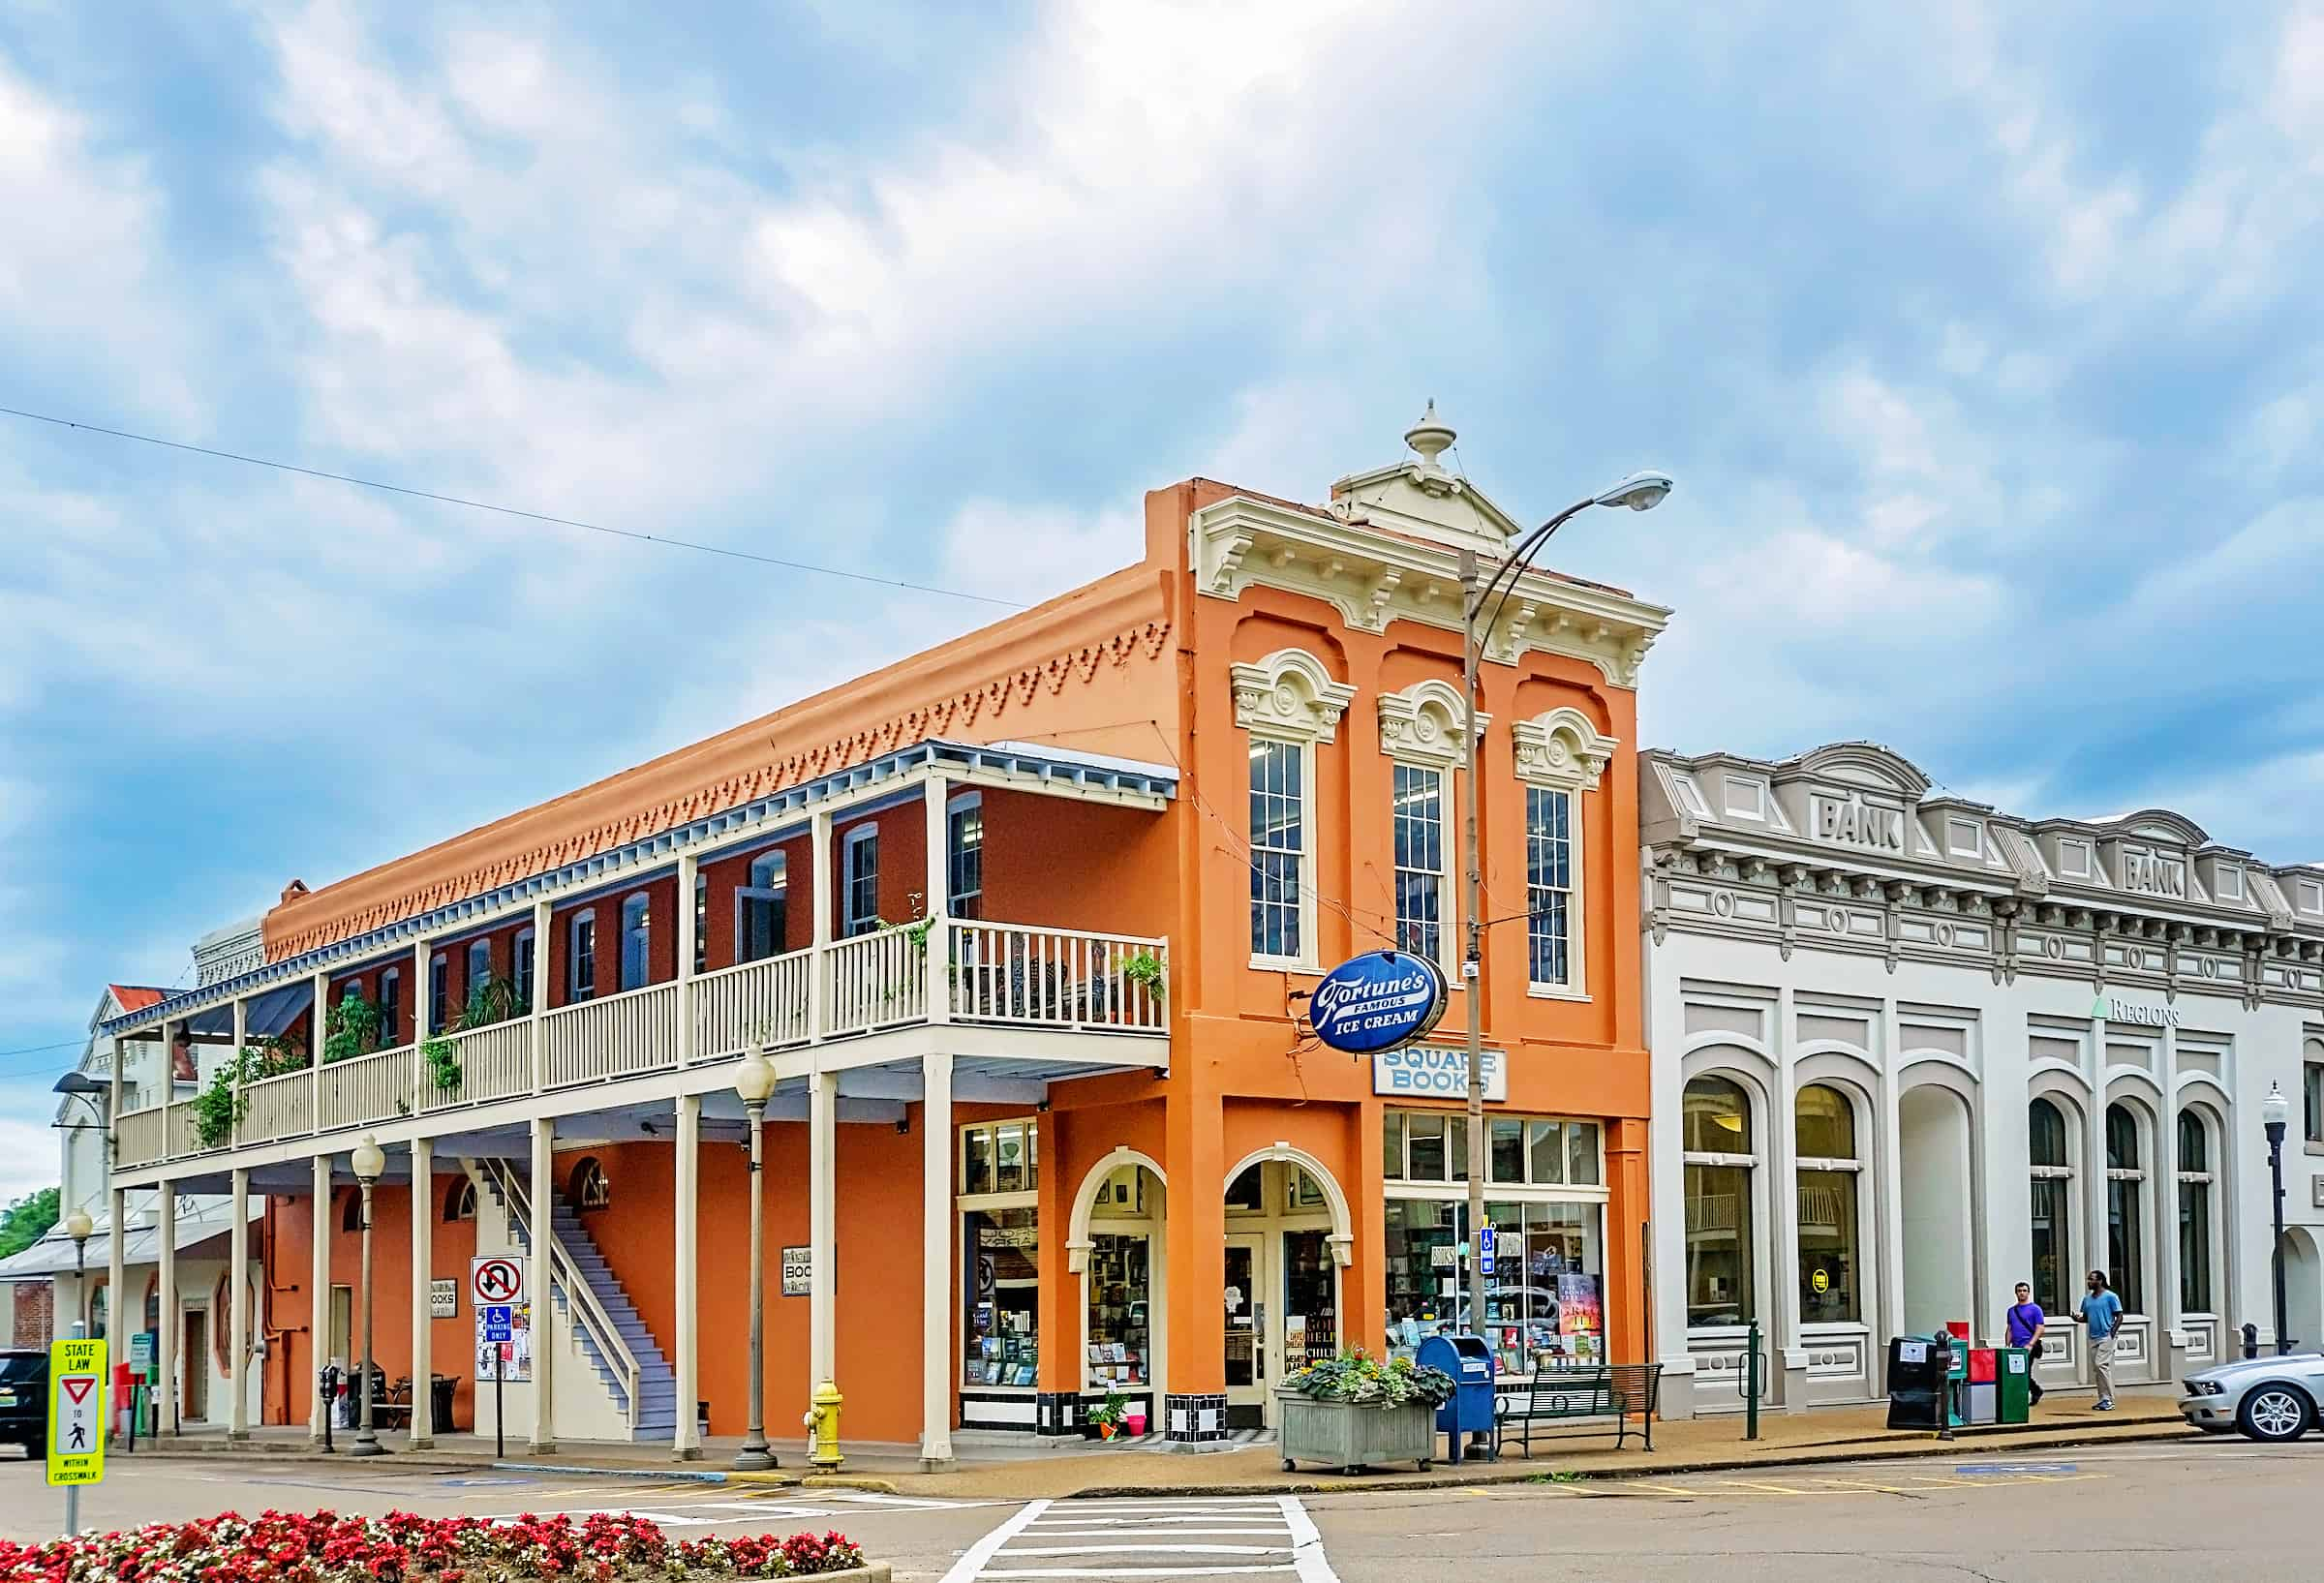 Cloudy skies gather above Square Books bookstore in Oxford Mississippi